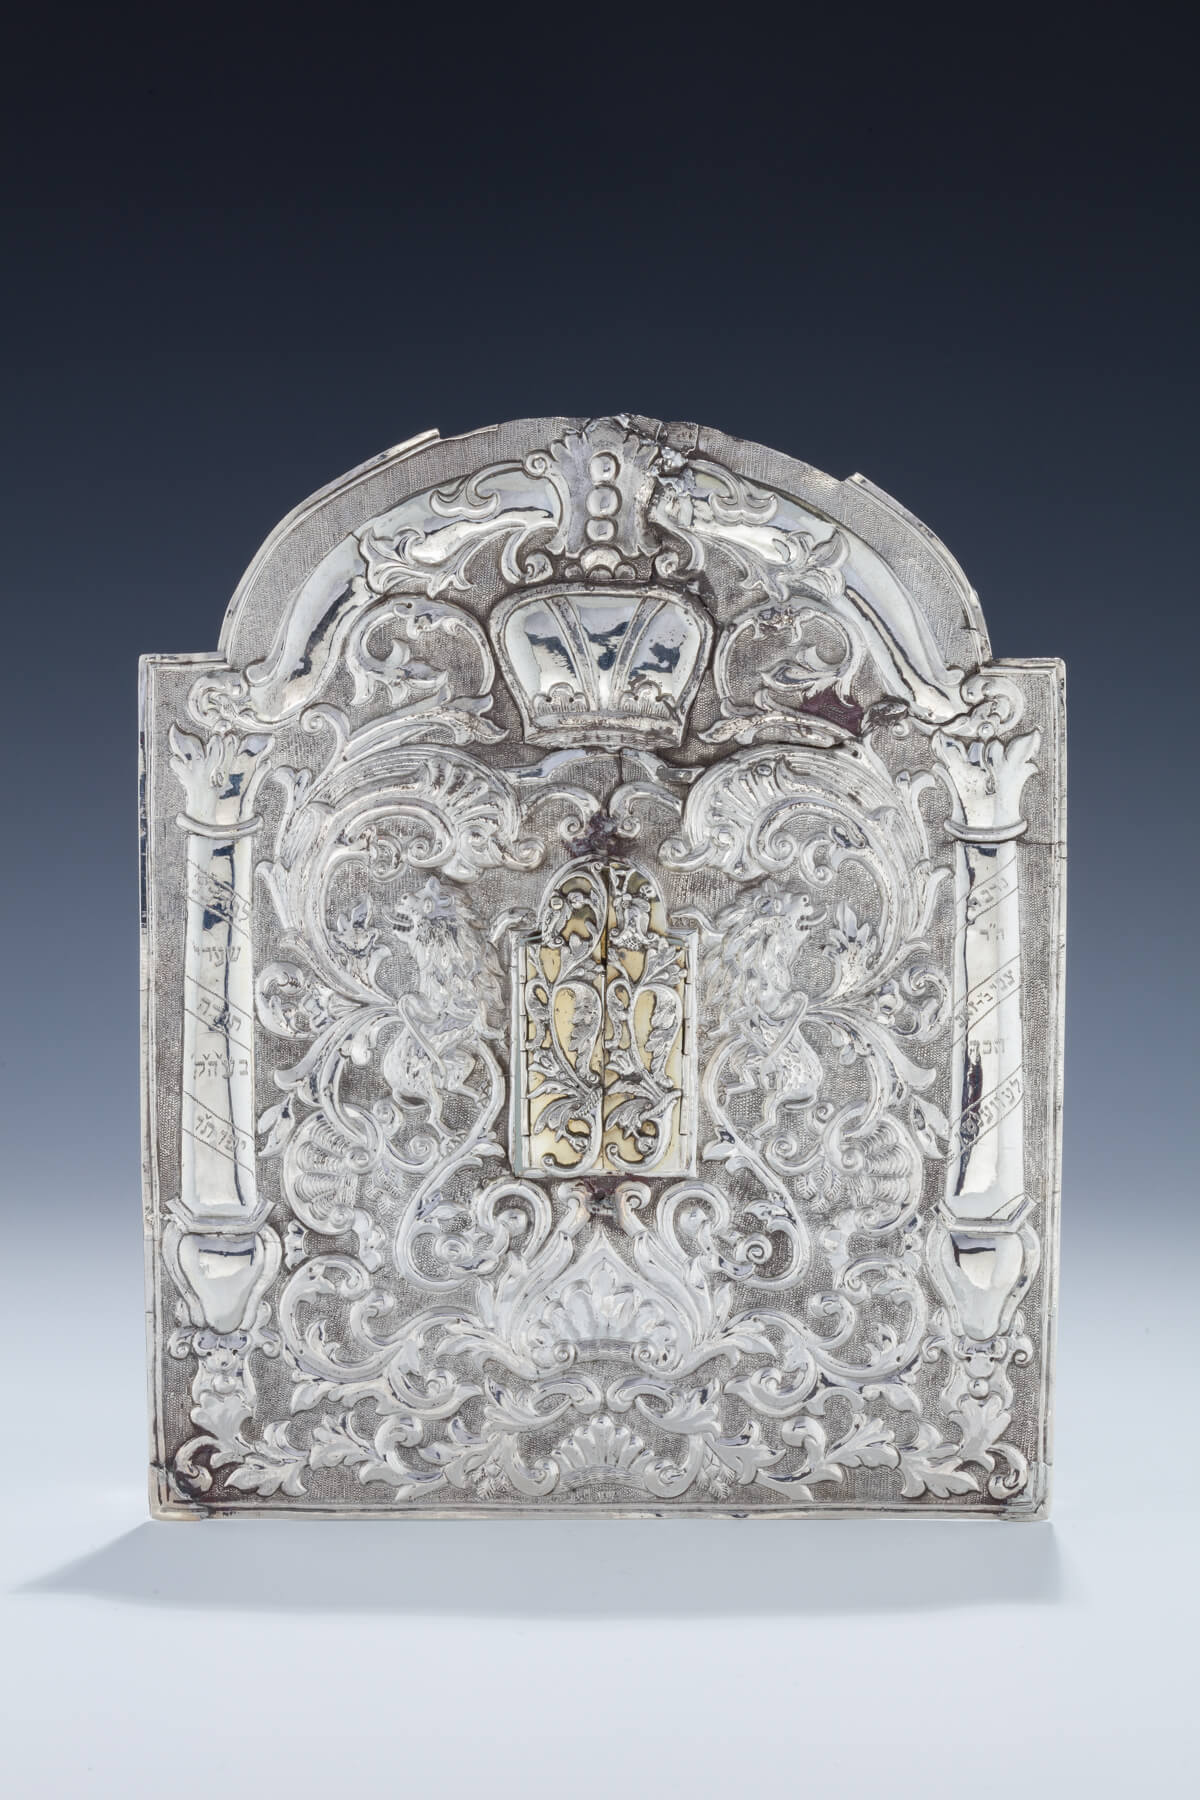 135. An Exceptionally Rare Silver Torah Shield